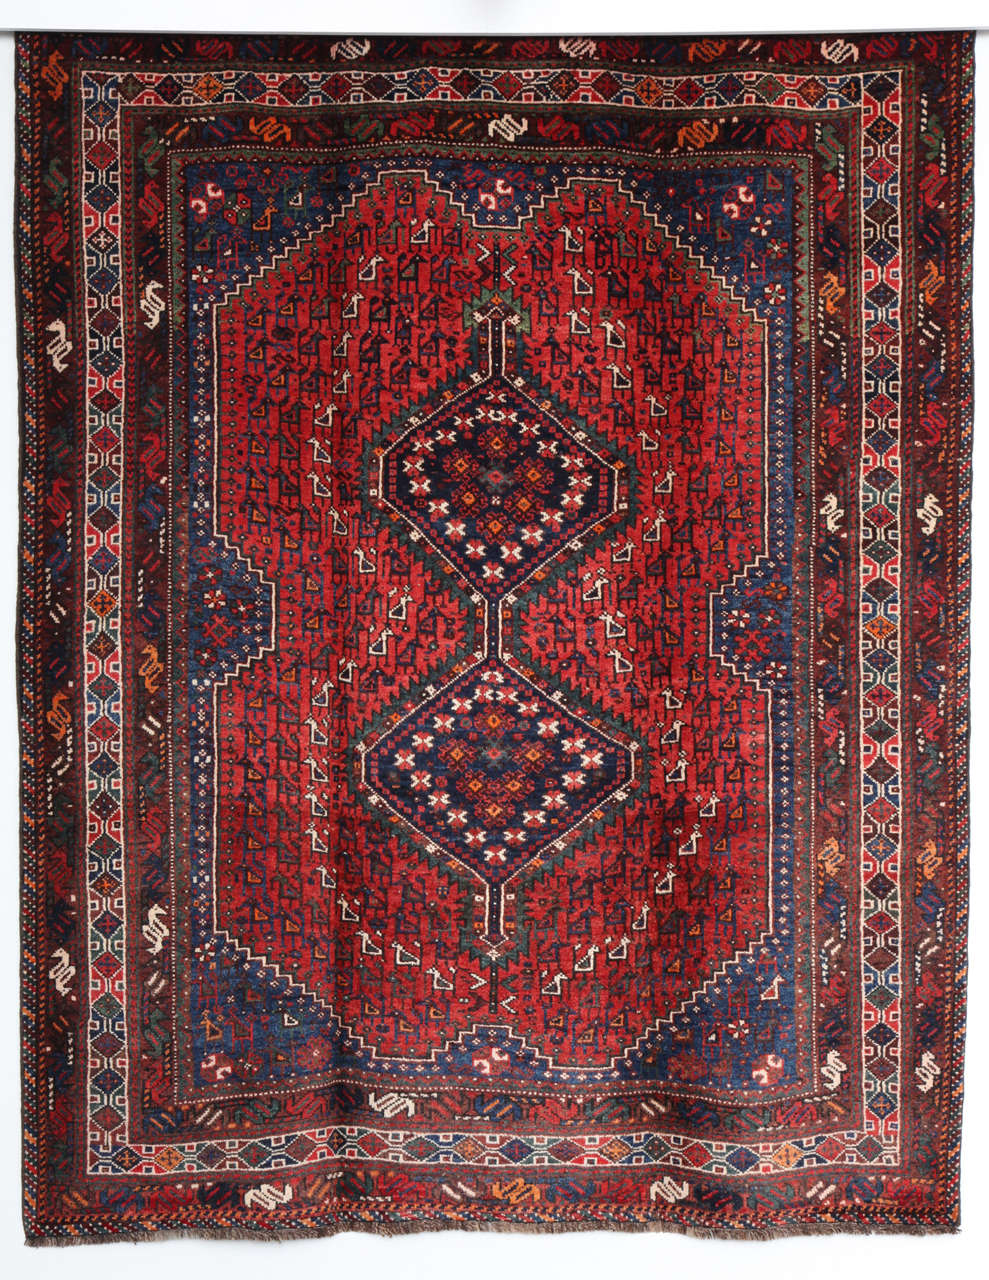 This Persian Qashqai carpet, circa 1920 consists of a pure handspun wool warp, weft and hand-knotted pile and organic vegetable dyes. Its geometric design is exceptionally detailed and balanced in both coloration and proportion. Exhibiting rich